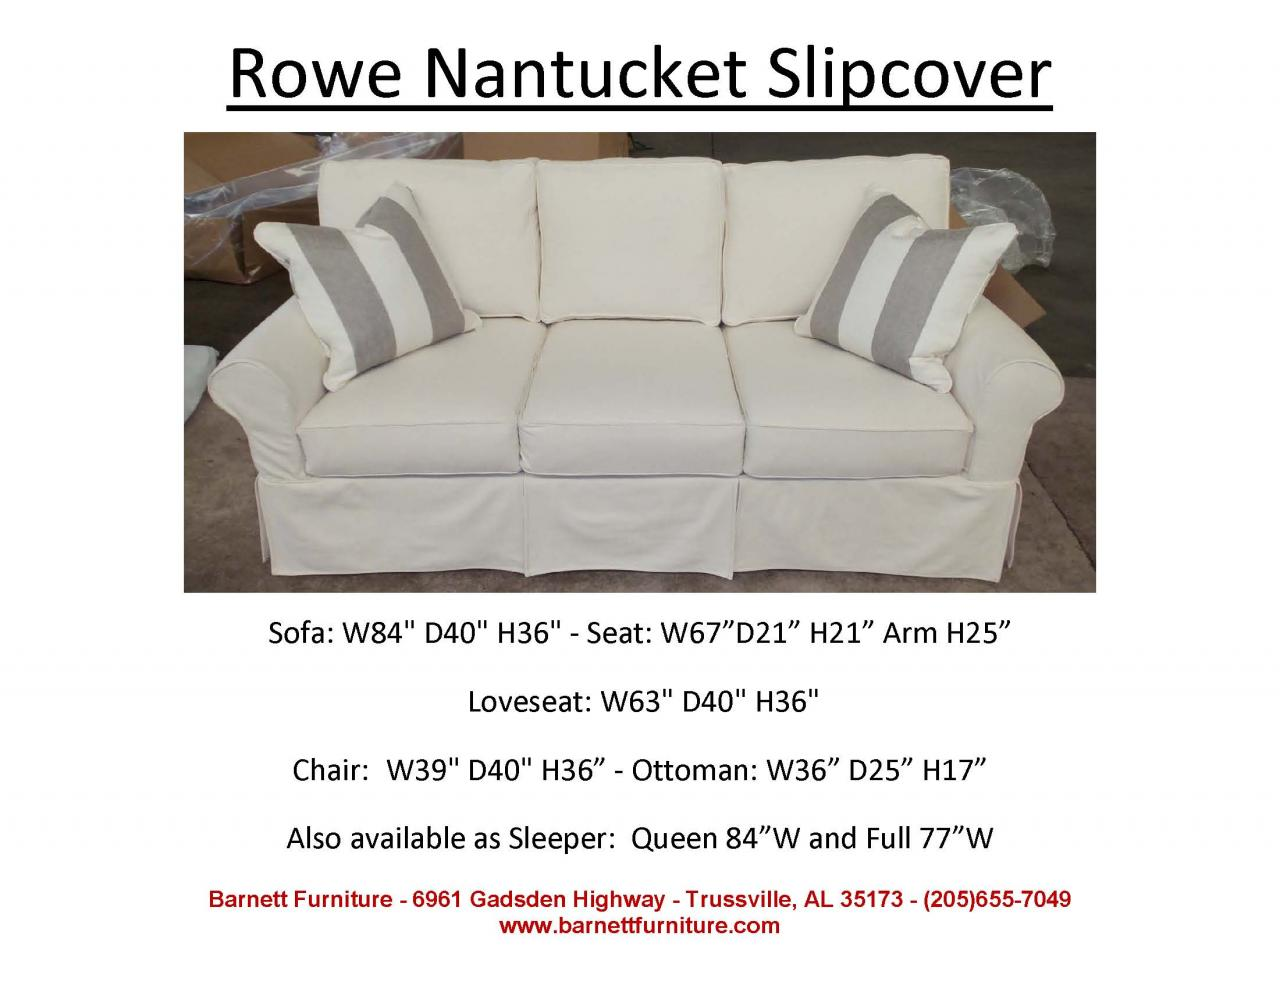 Etonnant ... Rowe Nantucket Slipcover Sofa ...